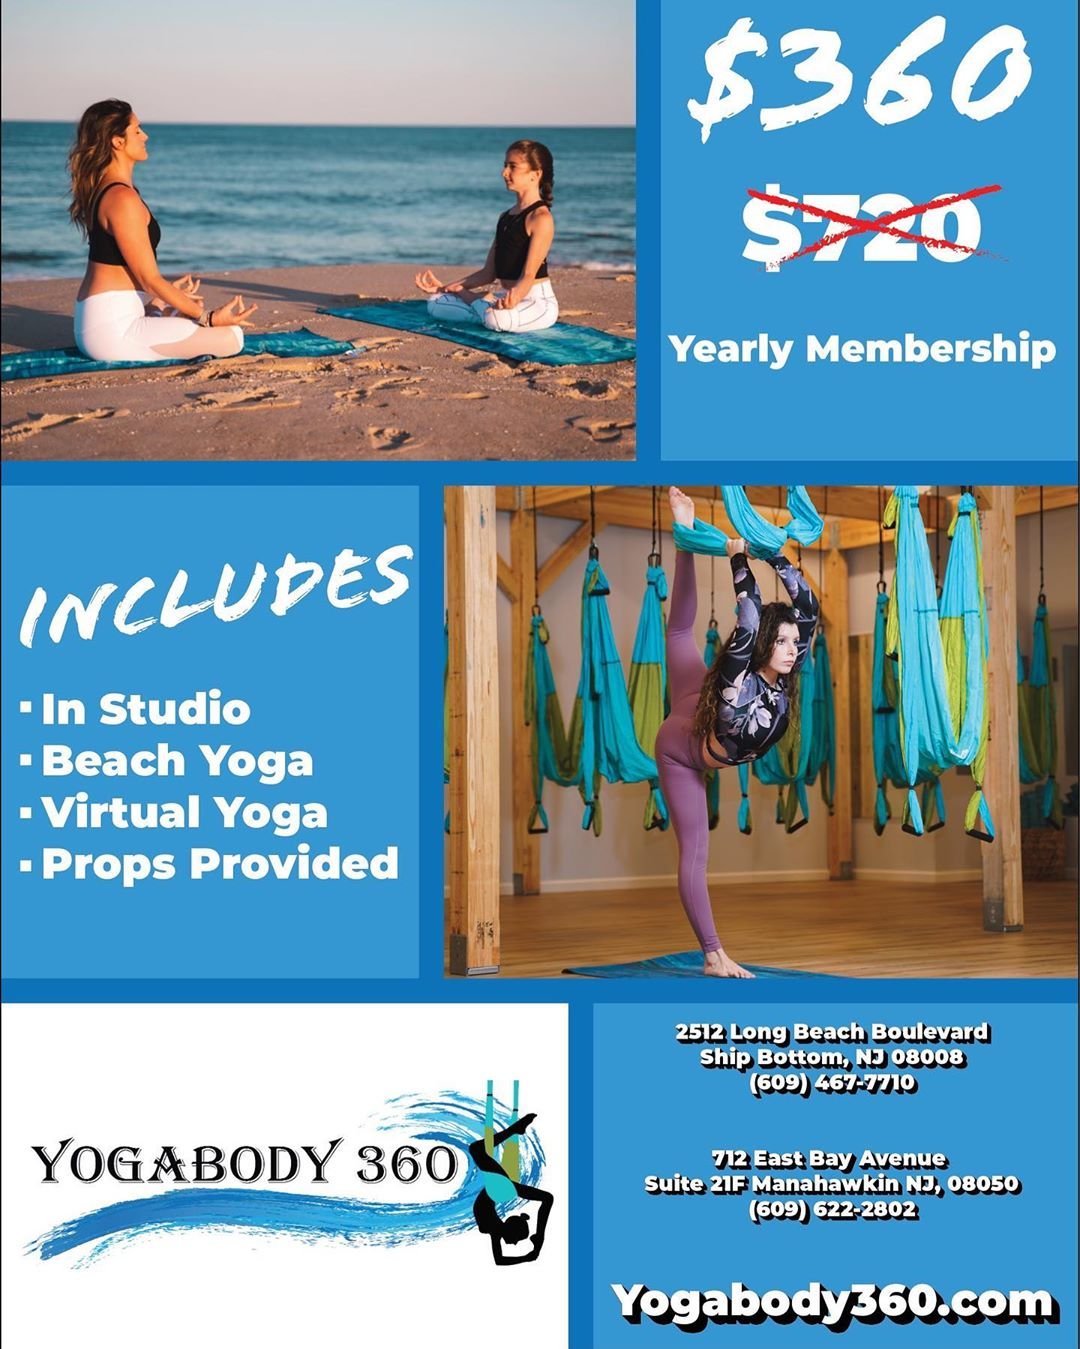 LBI • FOR A LIMITED TIME  $360 YEARLY MEMBERSHIP ($720 VALUE) LESS THAN A $1 A DAY  …